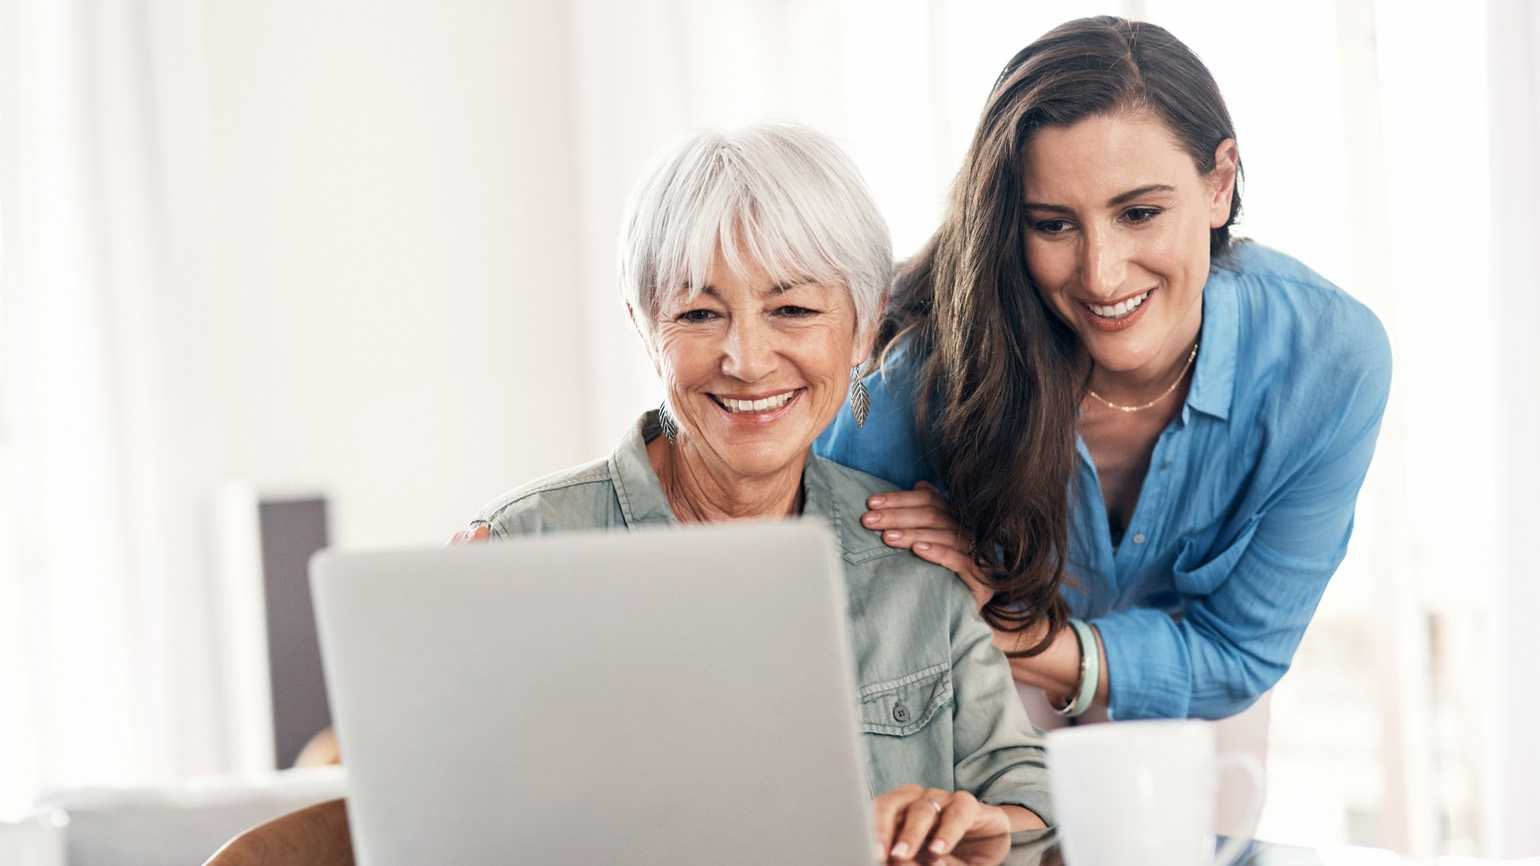 A mother overlooking her senior mother on a laptop.